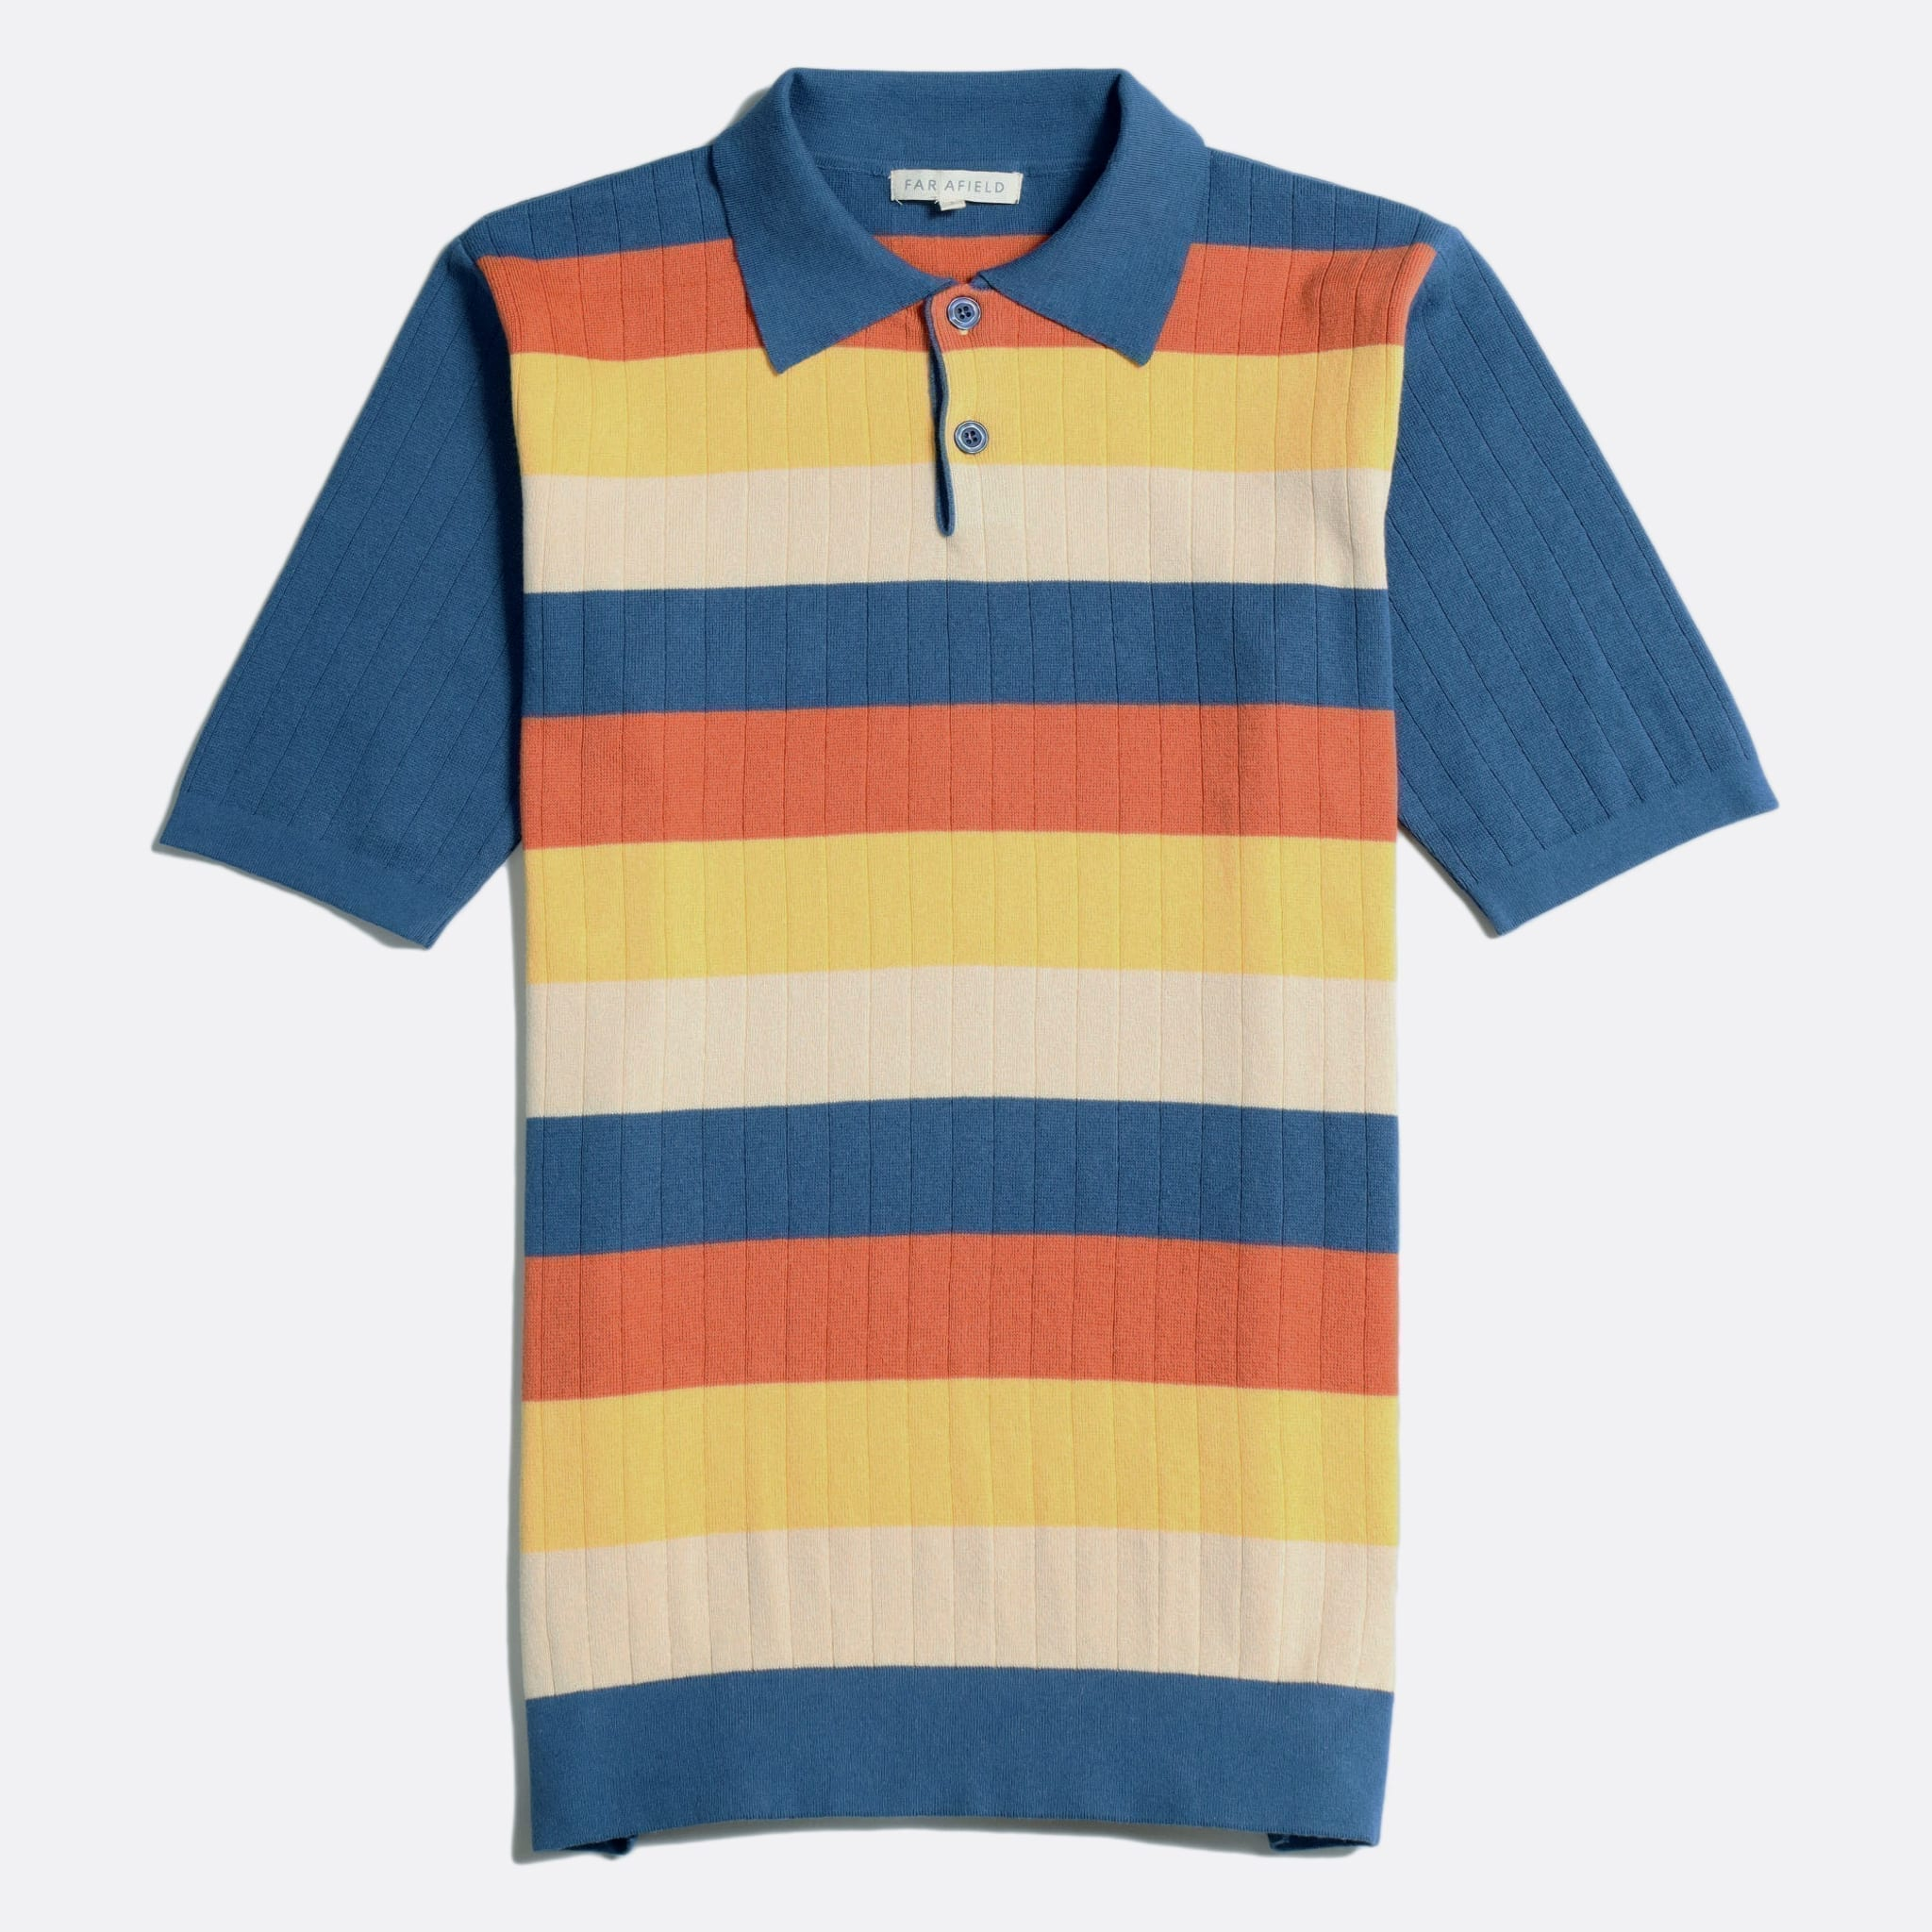 Far Afield Leroy Short Sleeve Polo a Ensign Blue Stripes Organic Cotton Fabric Short Sleeve Polo Mid Century Inspired